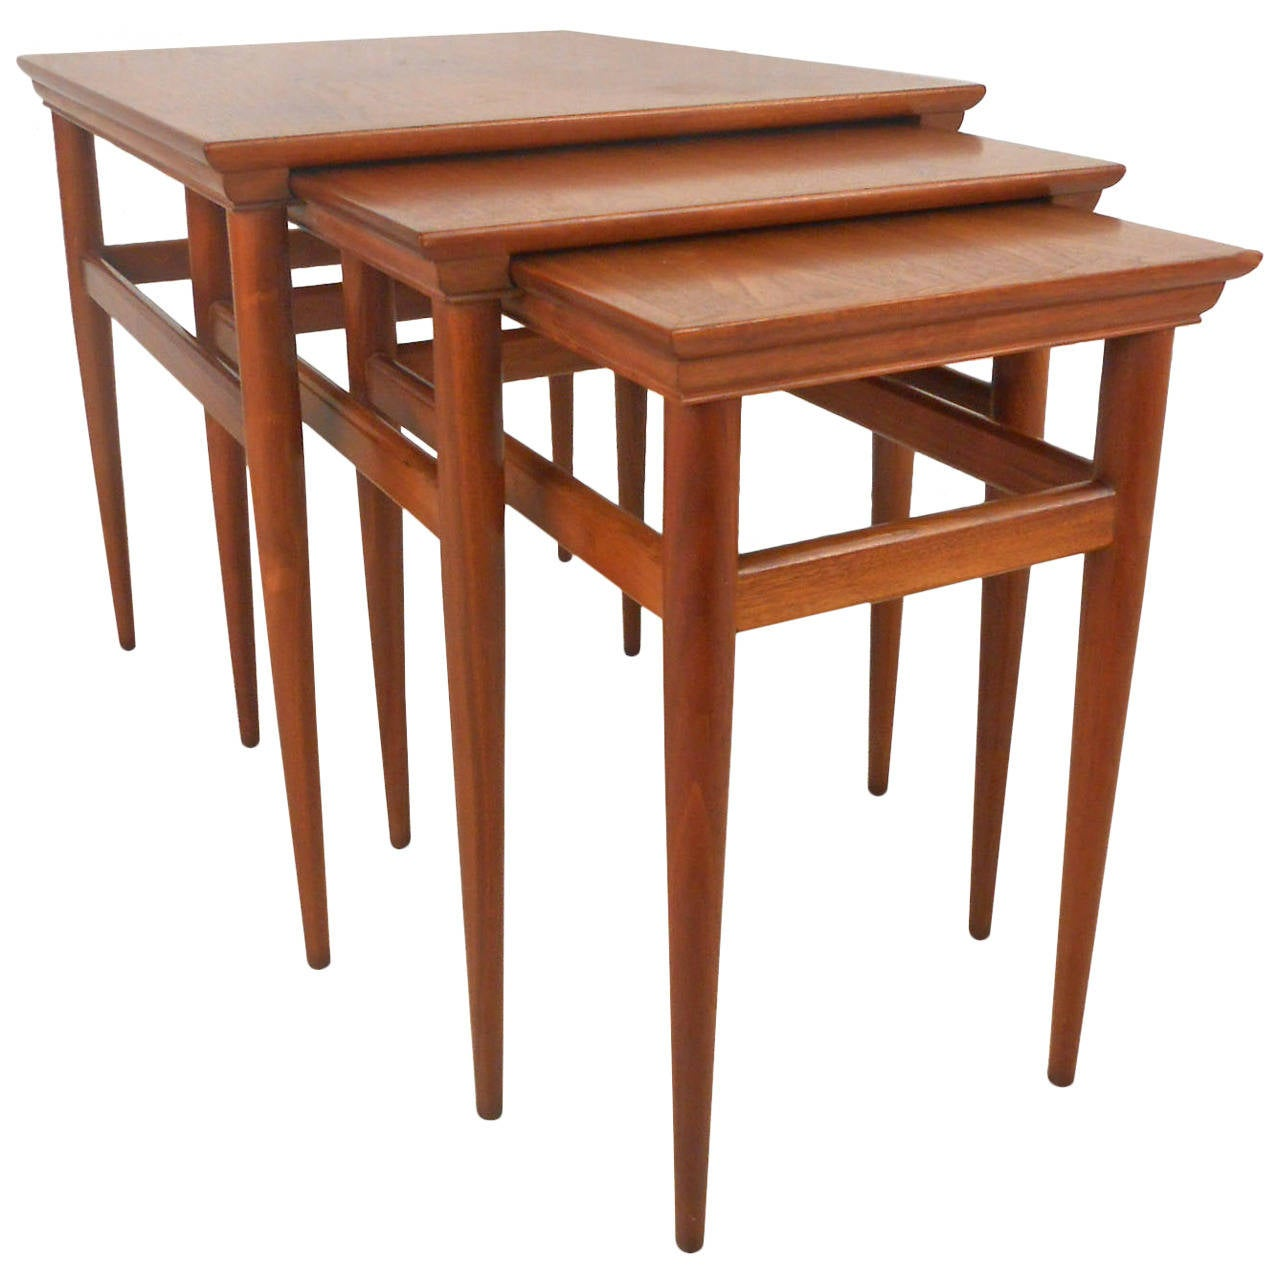 Set Of Mid-Century Modern Nesting Tables By Heritage At